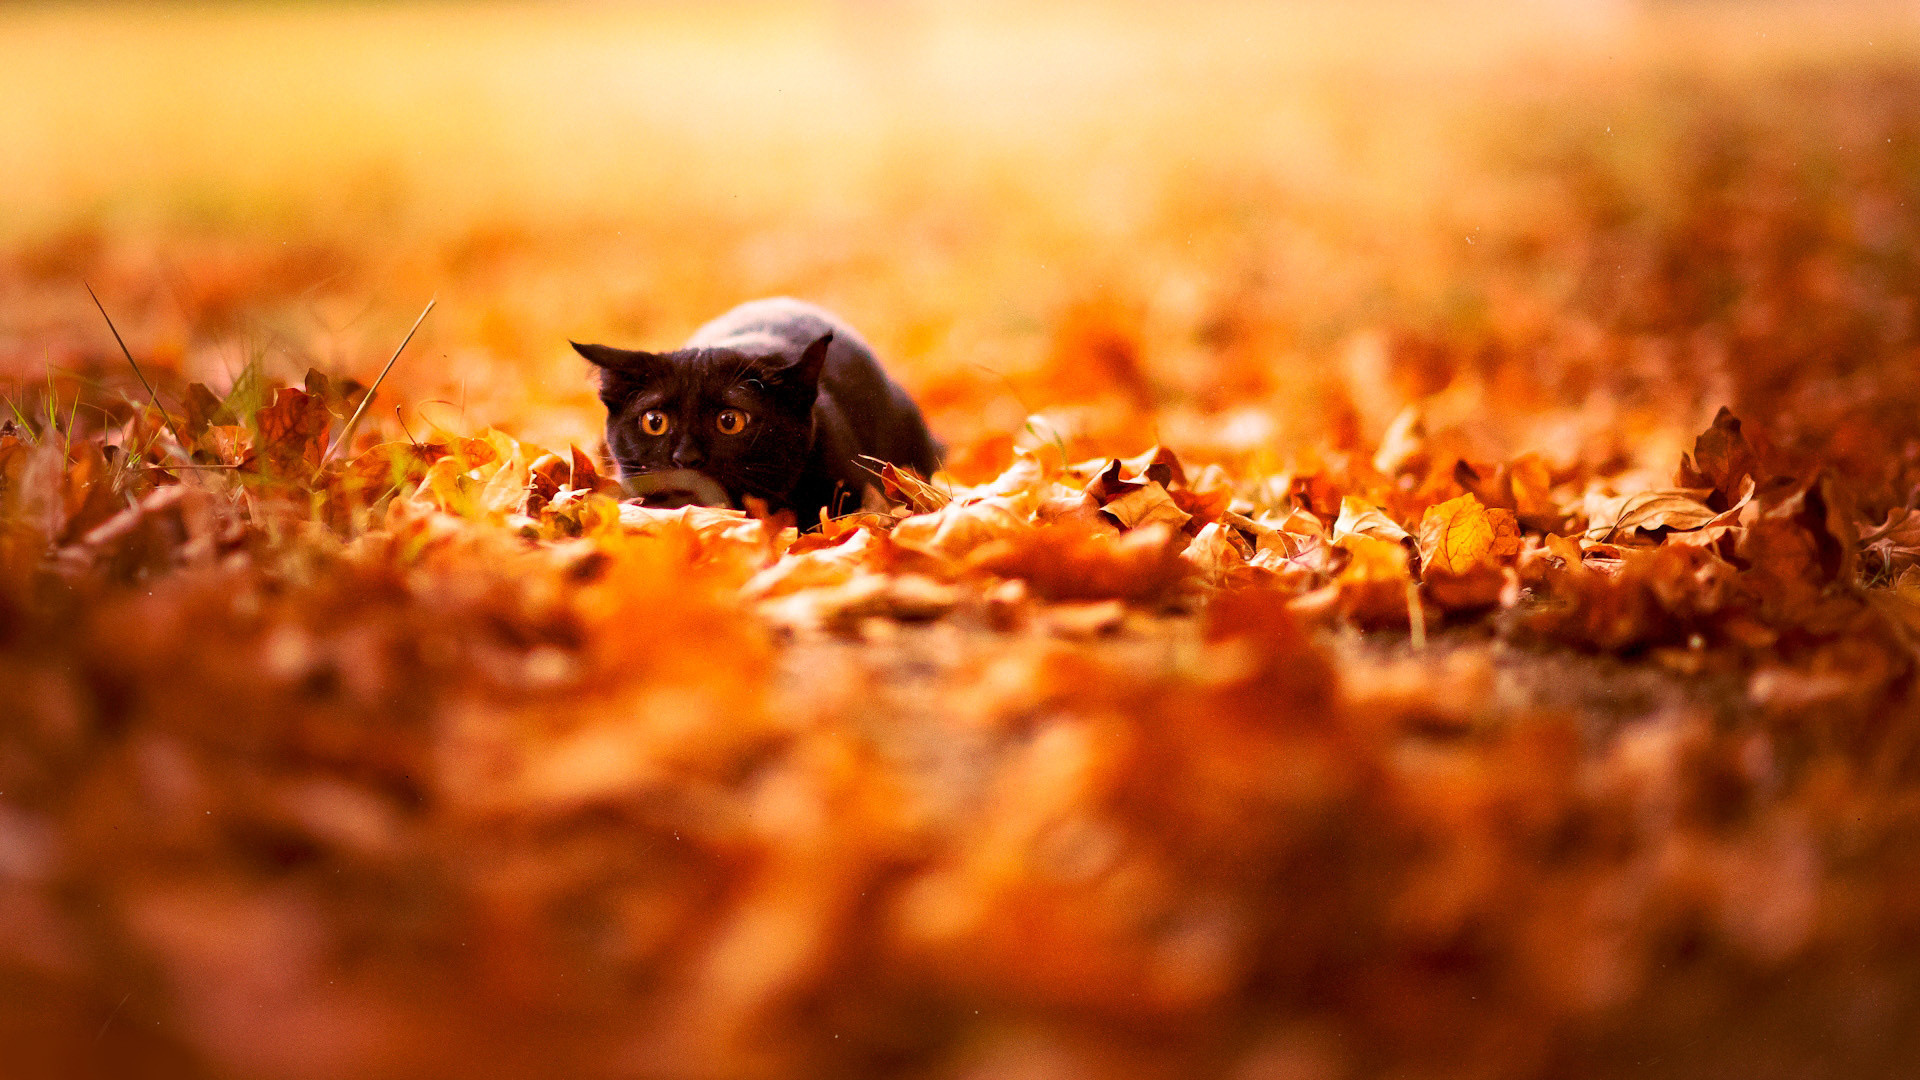 1920x1080 Hd Autumn Wallpapers Backgrounds Photos Images Pictures Yl Computing